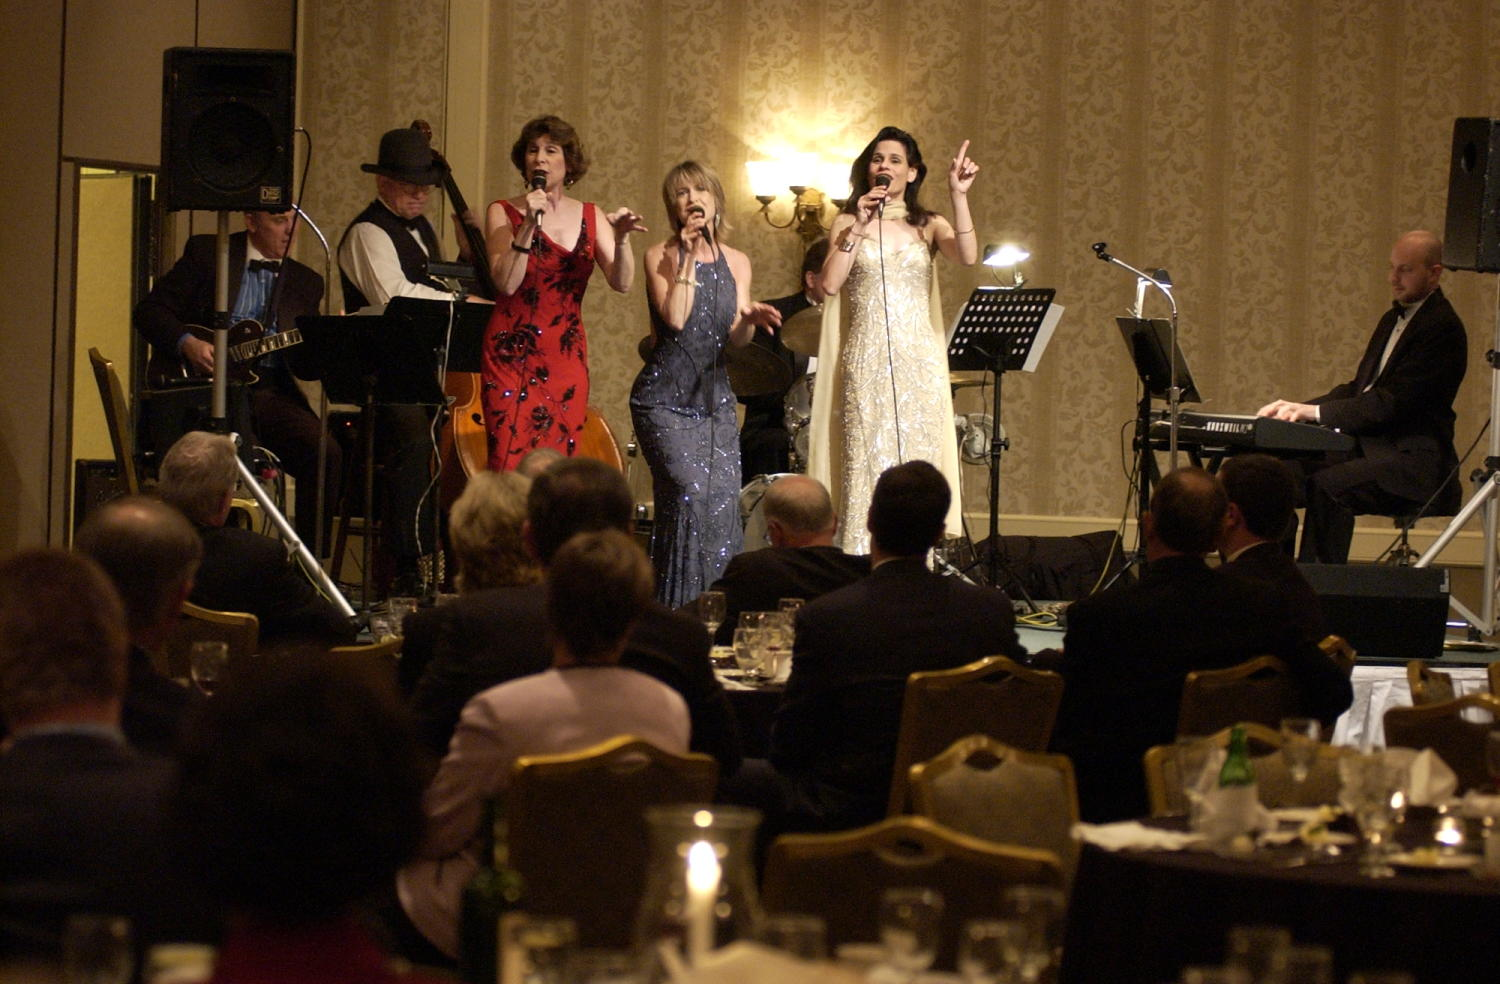 [Photograph of the entertainment at the TDNA conference], Photograph of female entertainers and their band performing at the 2004 Texas Daily News Association annual conference held in Corpus Christi. Conference goers are seen seated at their tables and looking up at the stage and the women perform their song for their crowd.,